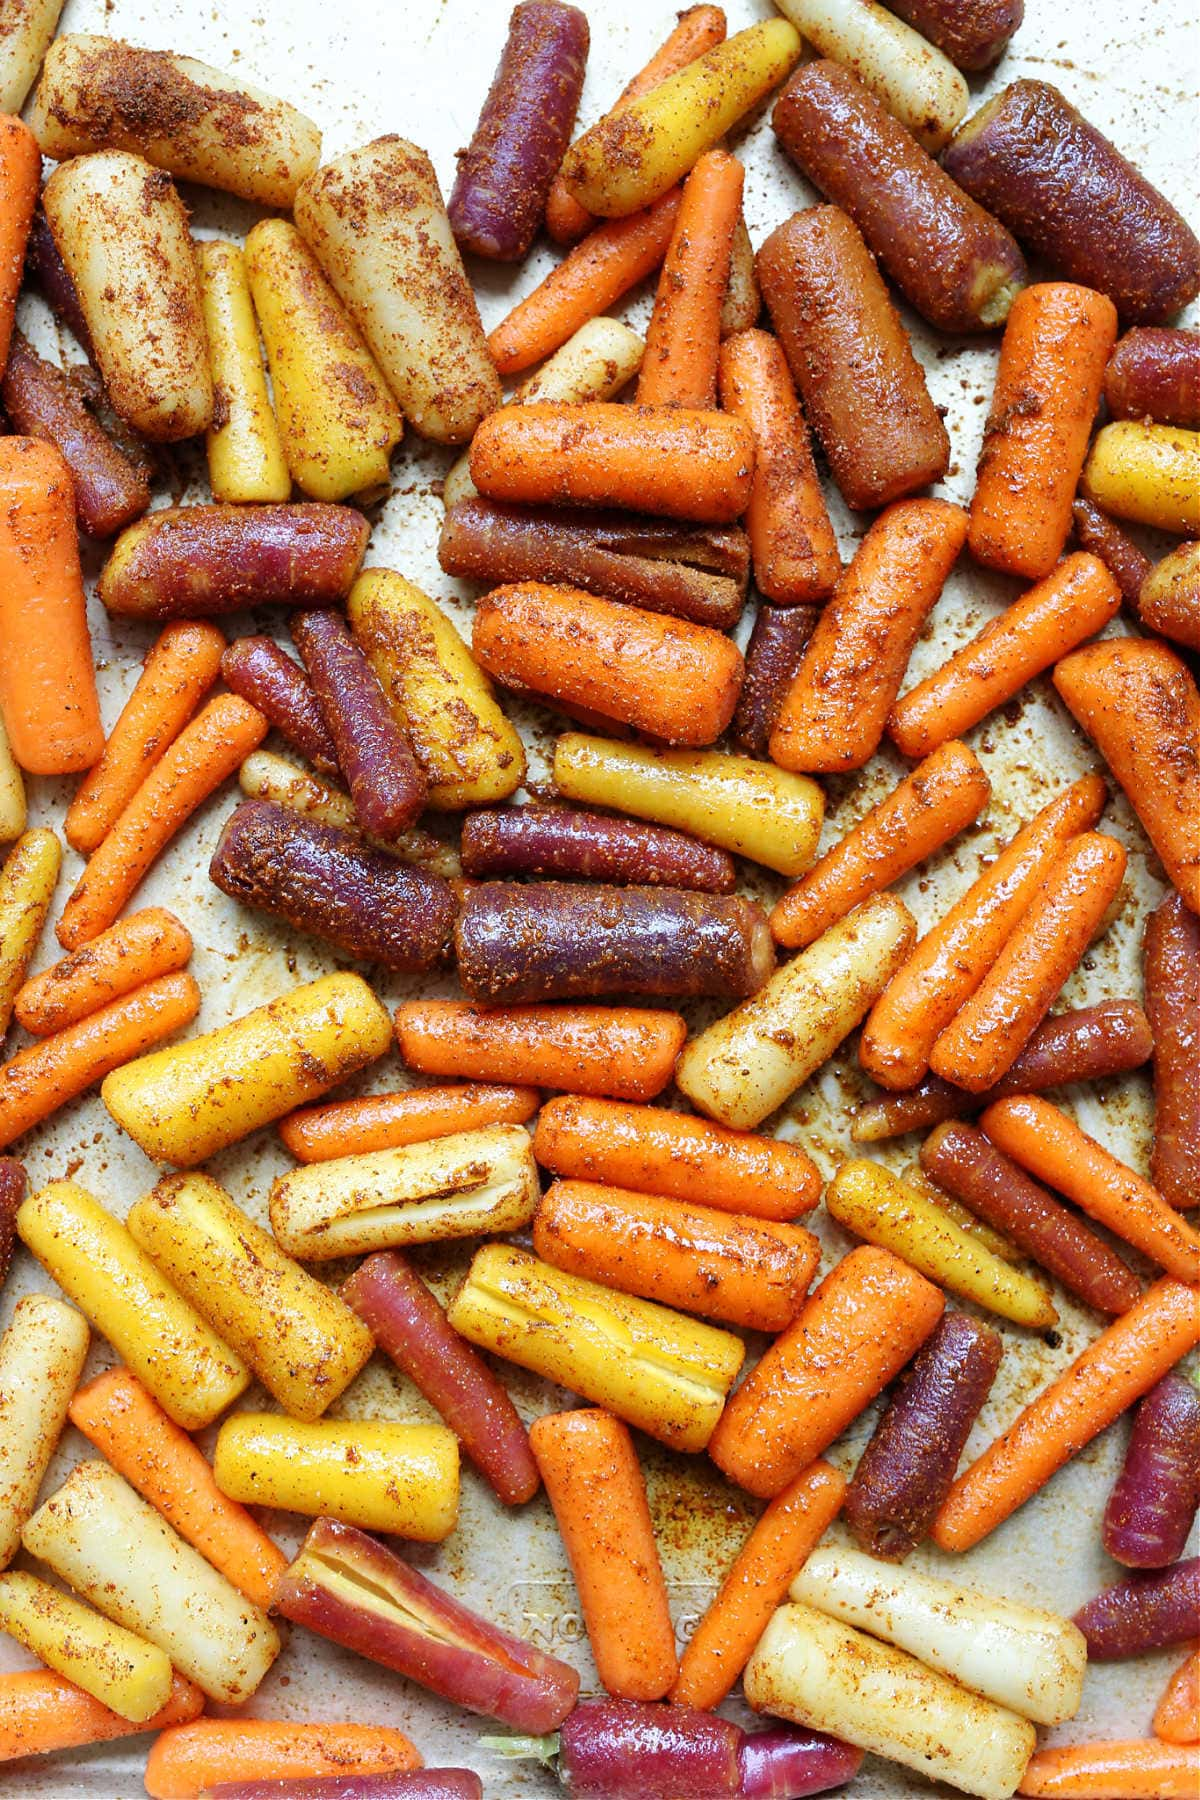 rainbow carrots seasoned and on a baking pan for roasting the vegetable